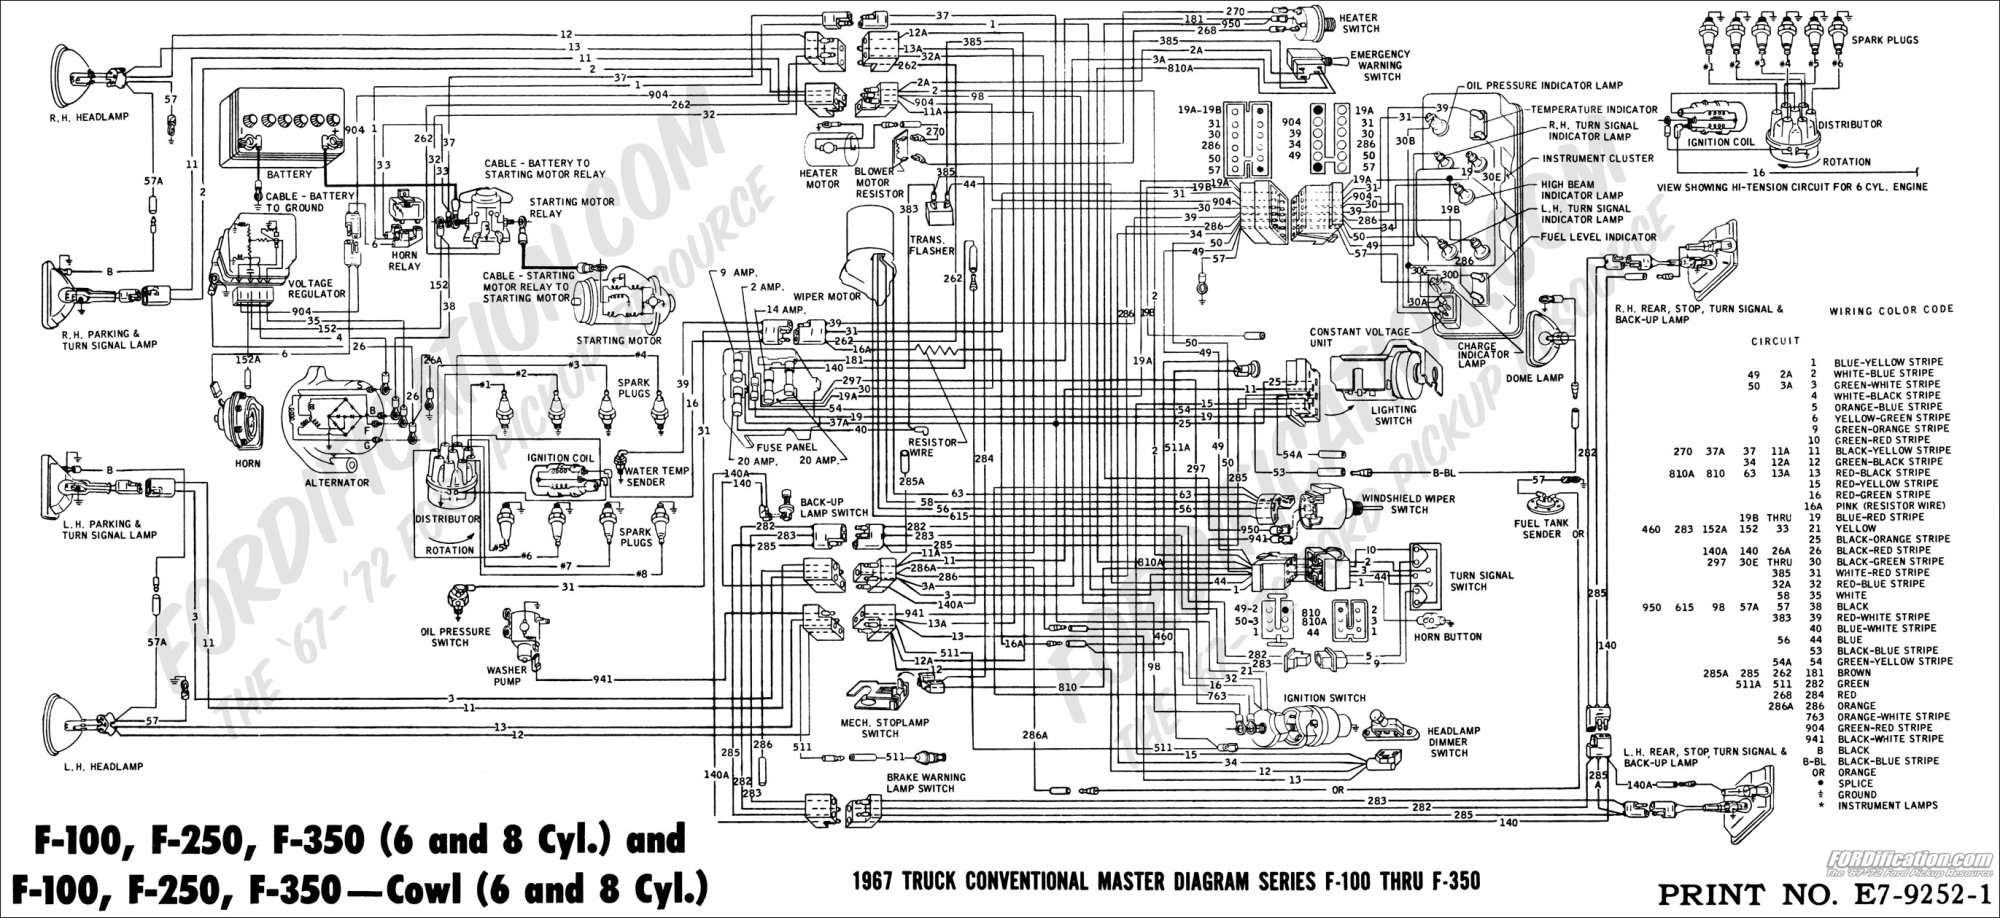 hight resolution of 2001 f250 wiring diagram wiring diagram origin ford f 350 wiring diagram 2001 f 250